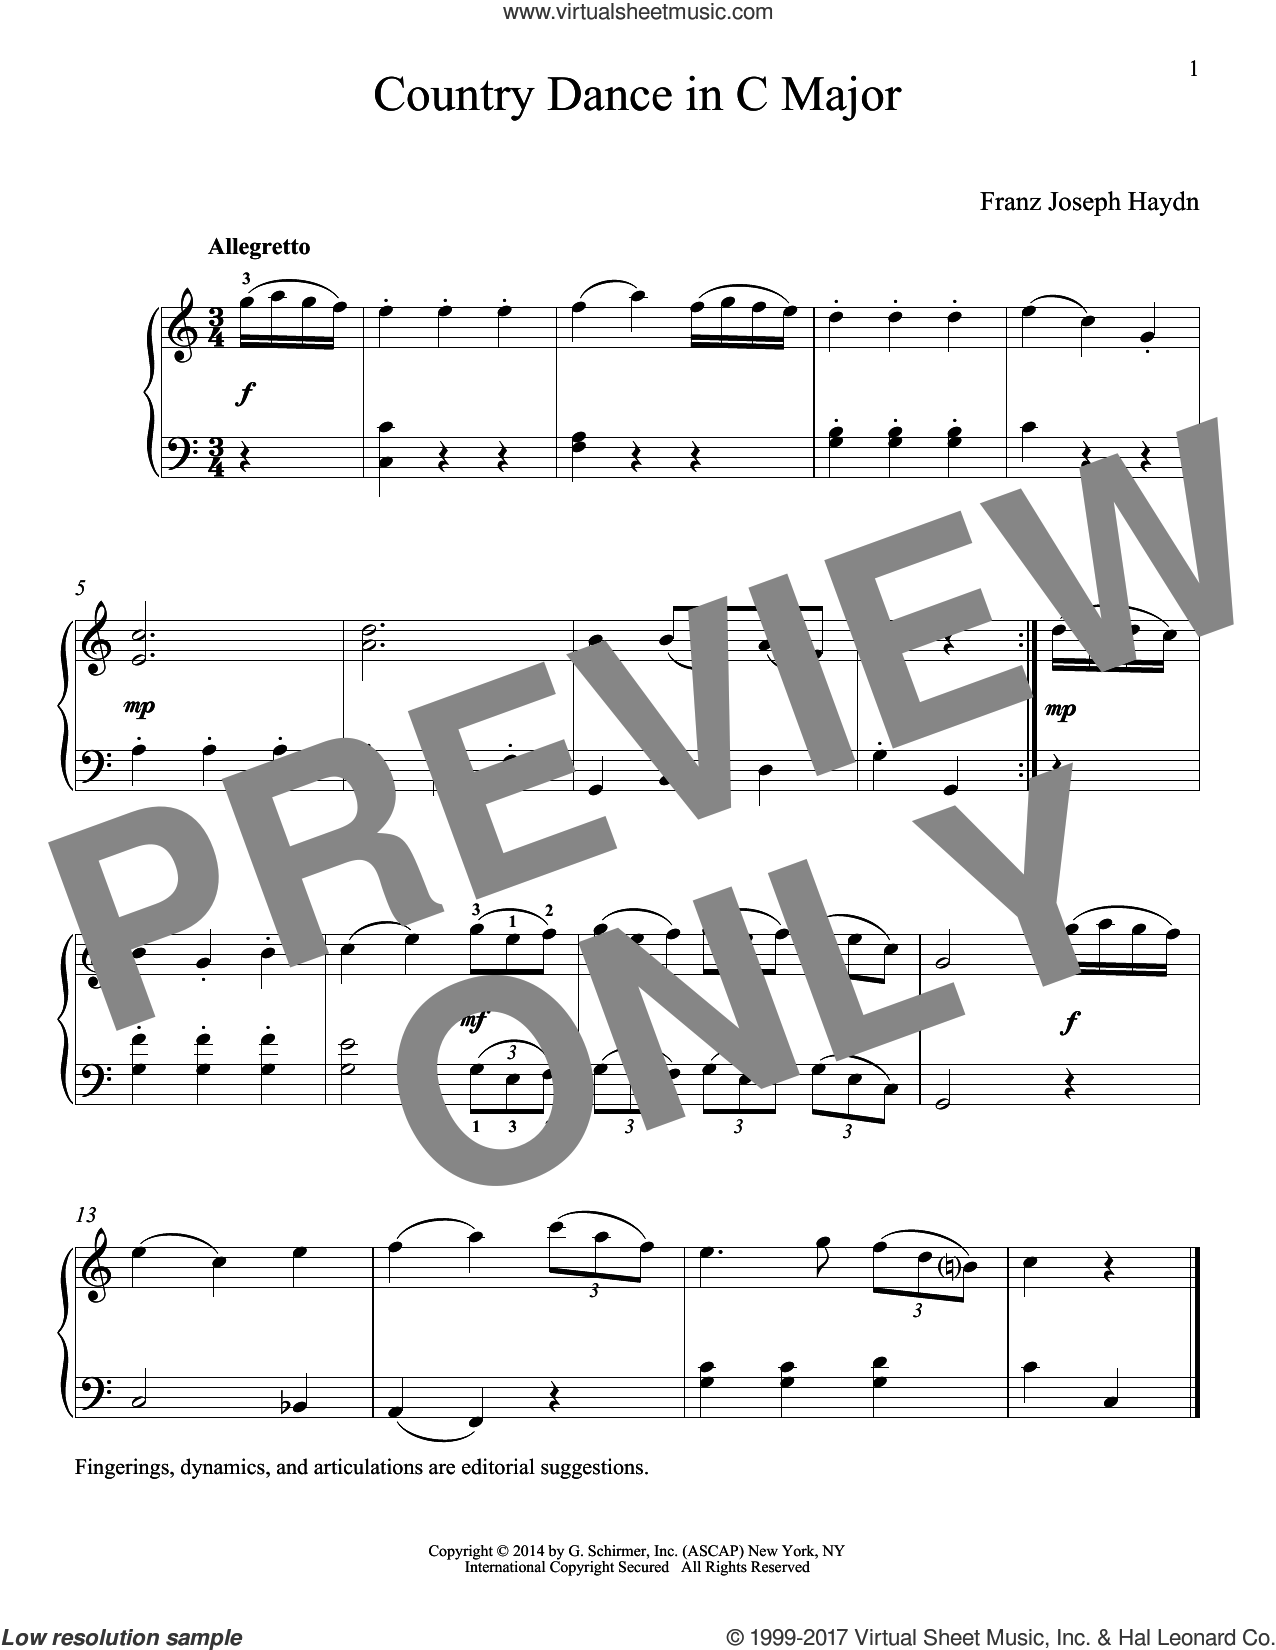 Country Dance In C Major sheet music for piano solo by Franz Joseph Haydn, classical score, intermediate skill level